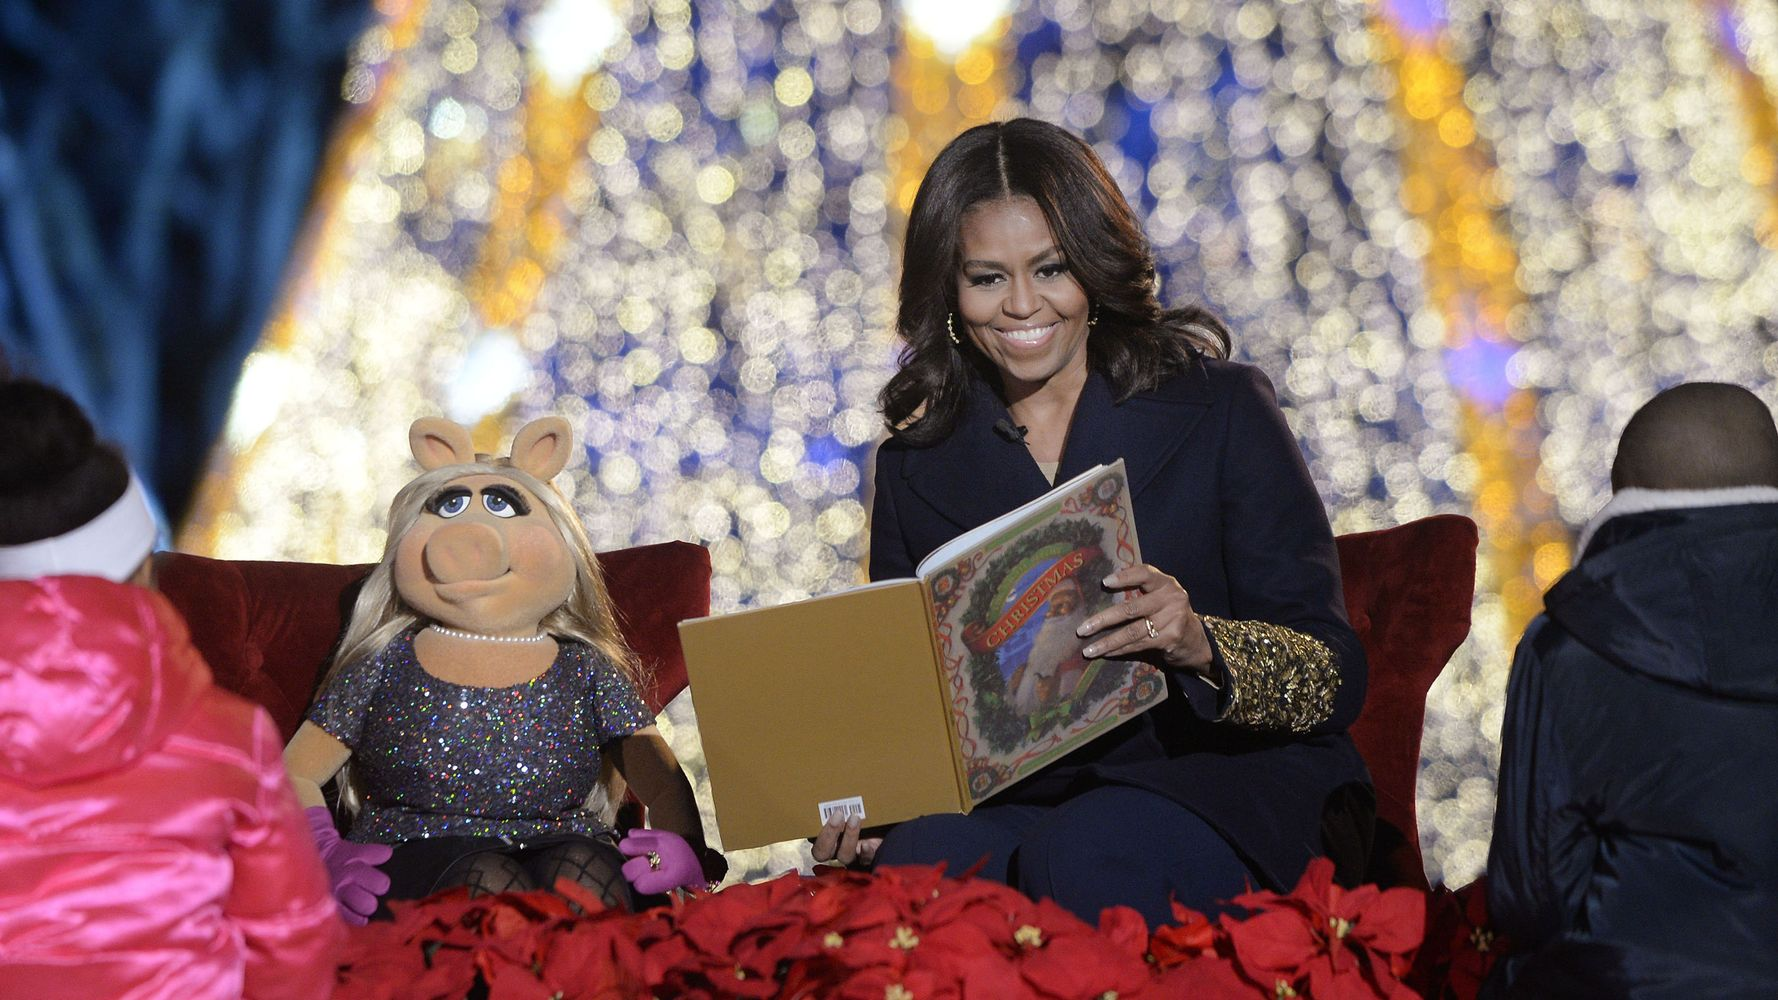 Michelle Obama And Miss Piggy Read 'The Night Before Christmas'